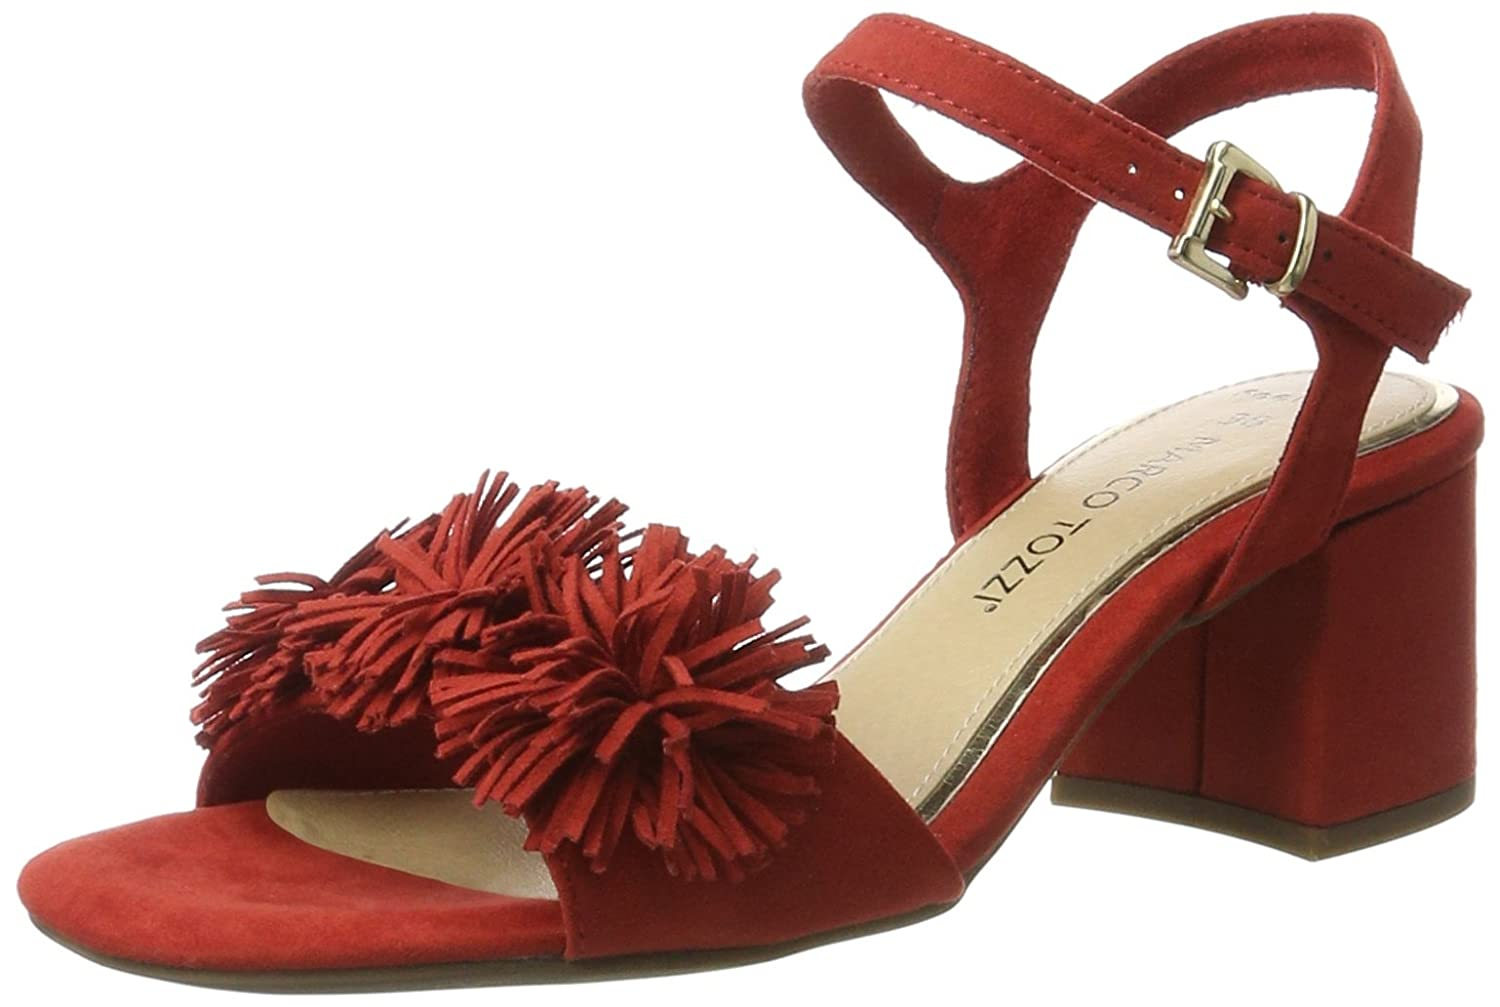 Marco Tozzi 28315, Sandales Bout Ouvert Femme, Rouge (Red 500), 37 EU